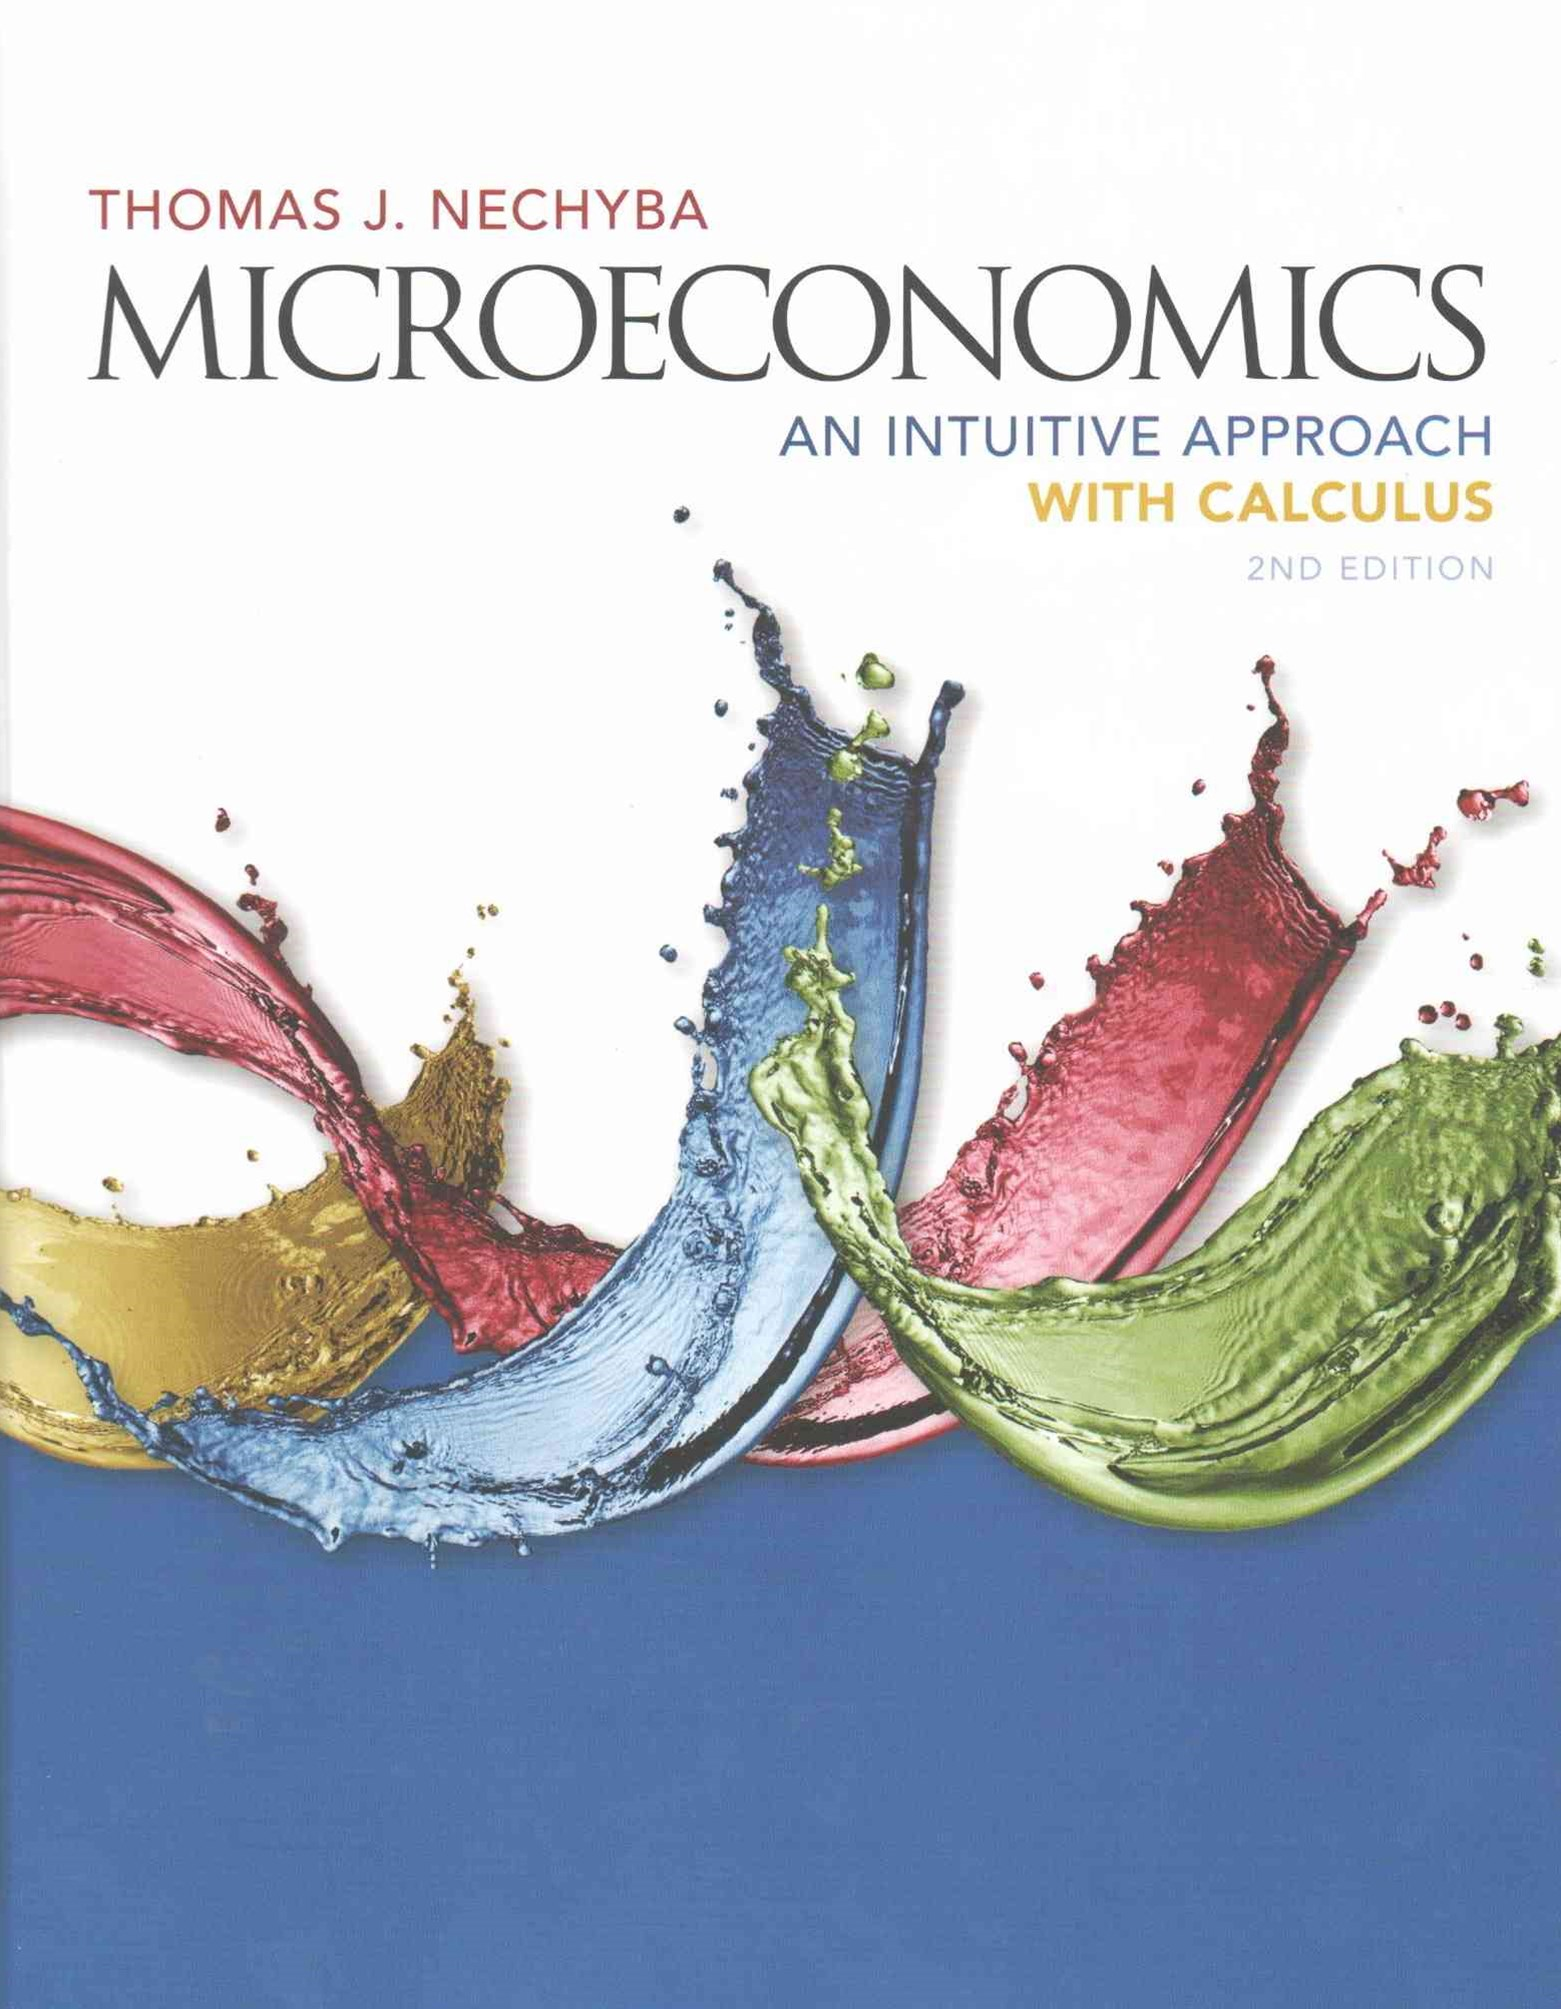 Microeconomics : An Intuitive Approach with Calculus